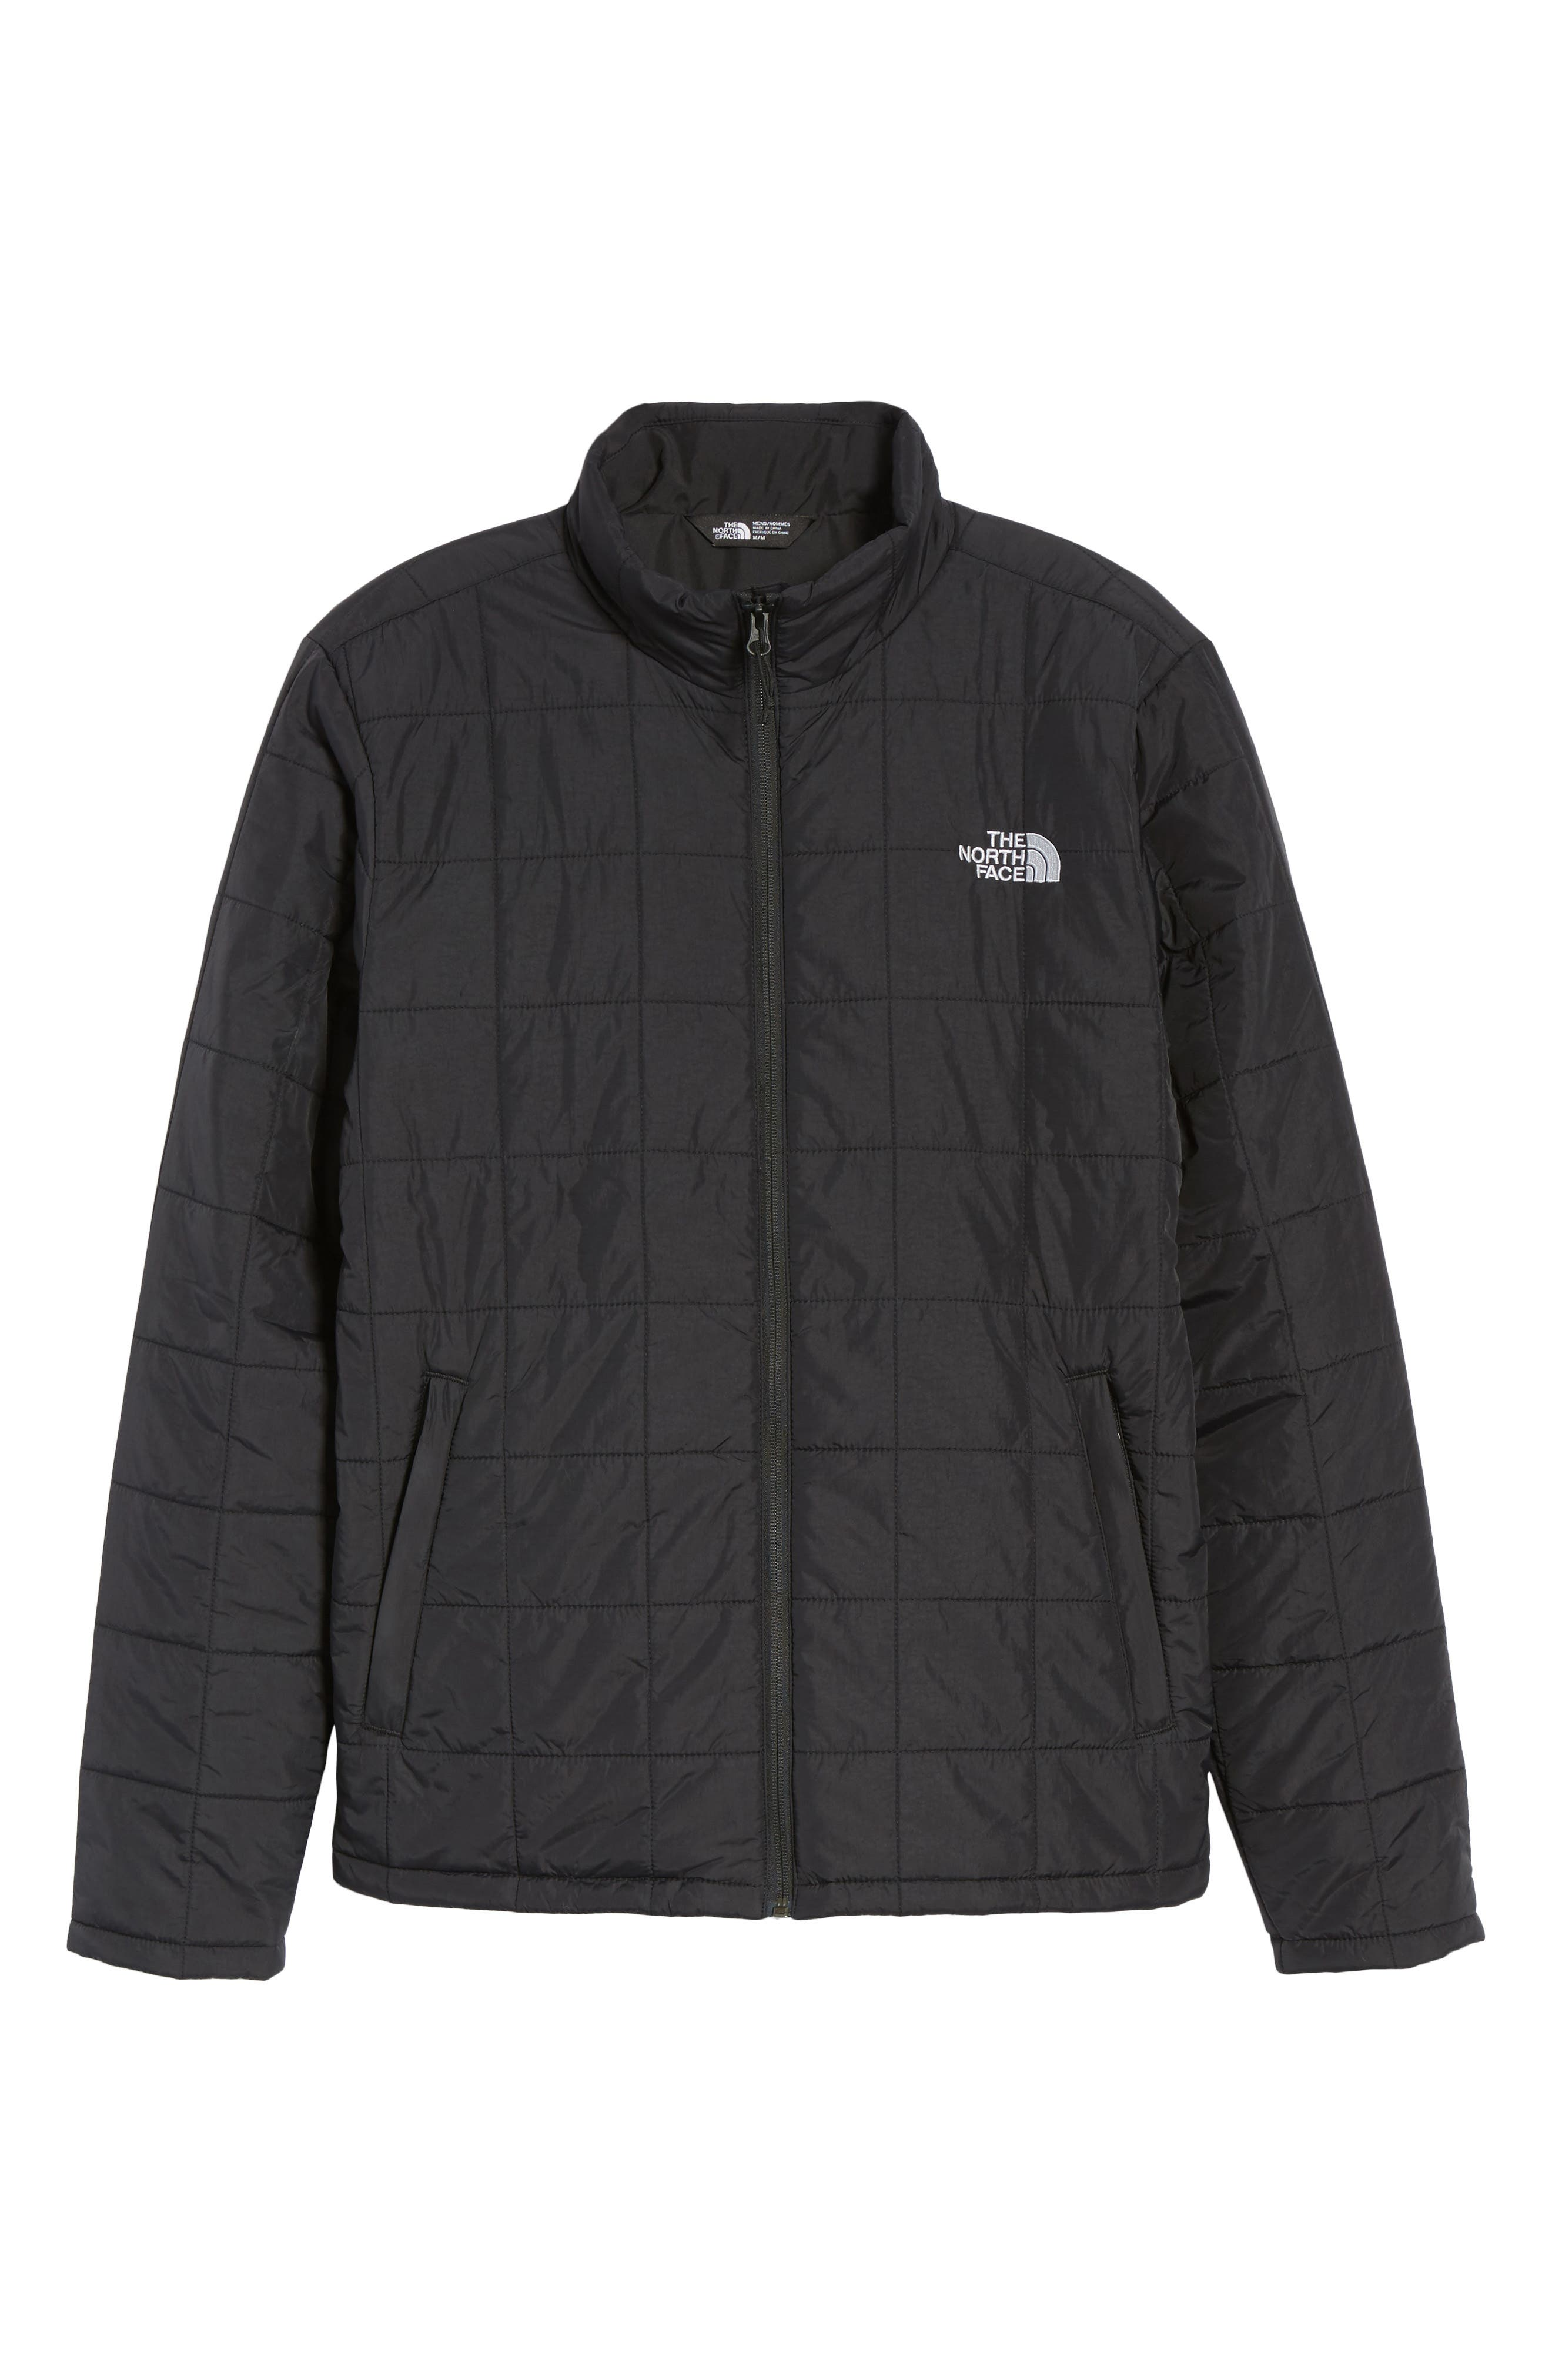 THE NORTH FACE, Harway Heatseaker<sup>™</sup> Jacket, Alternate thumbnail 6, color, 001